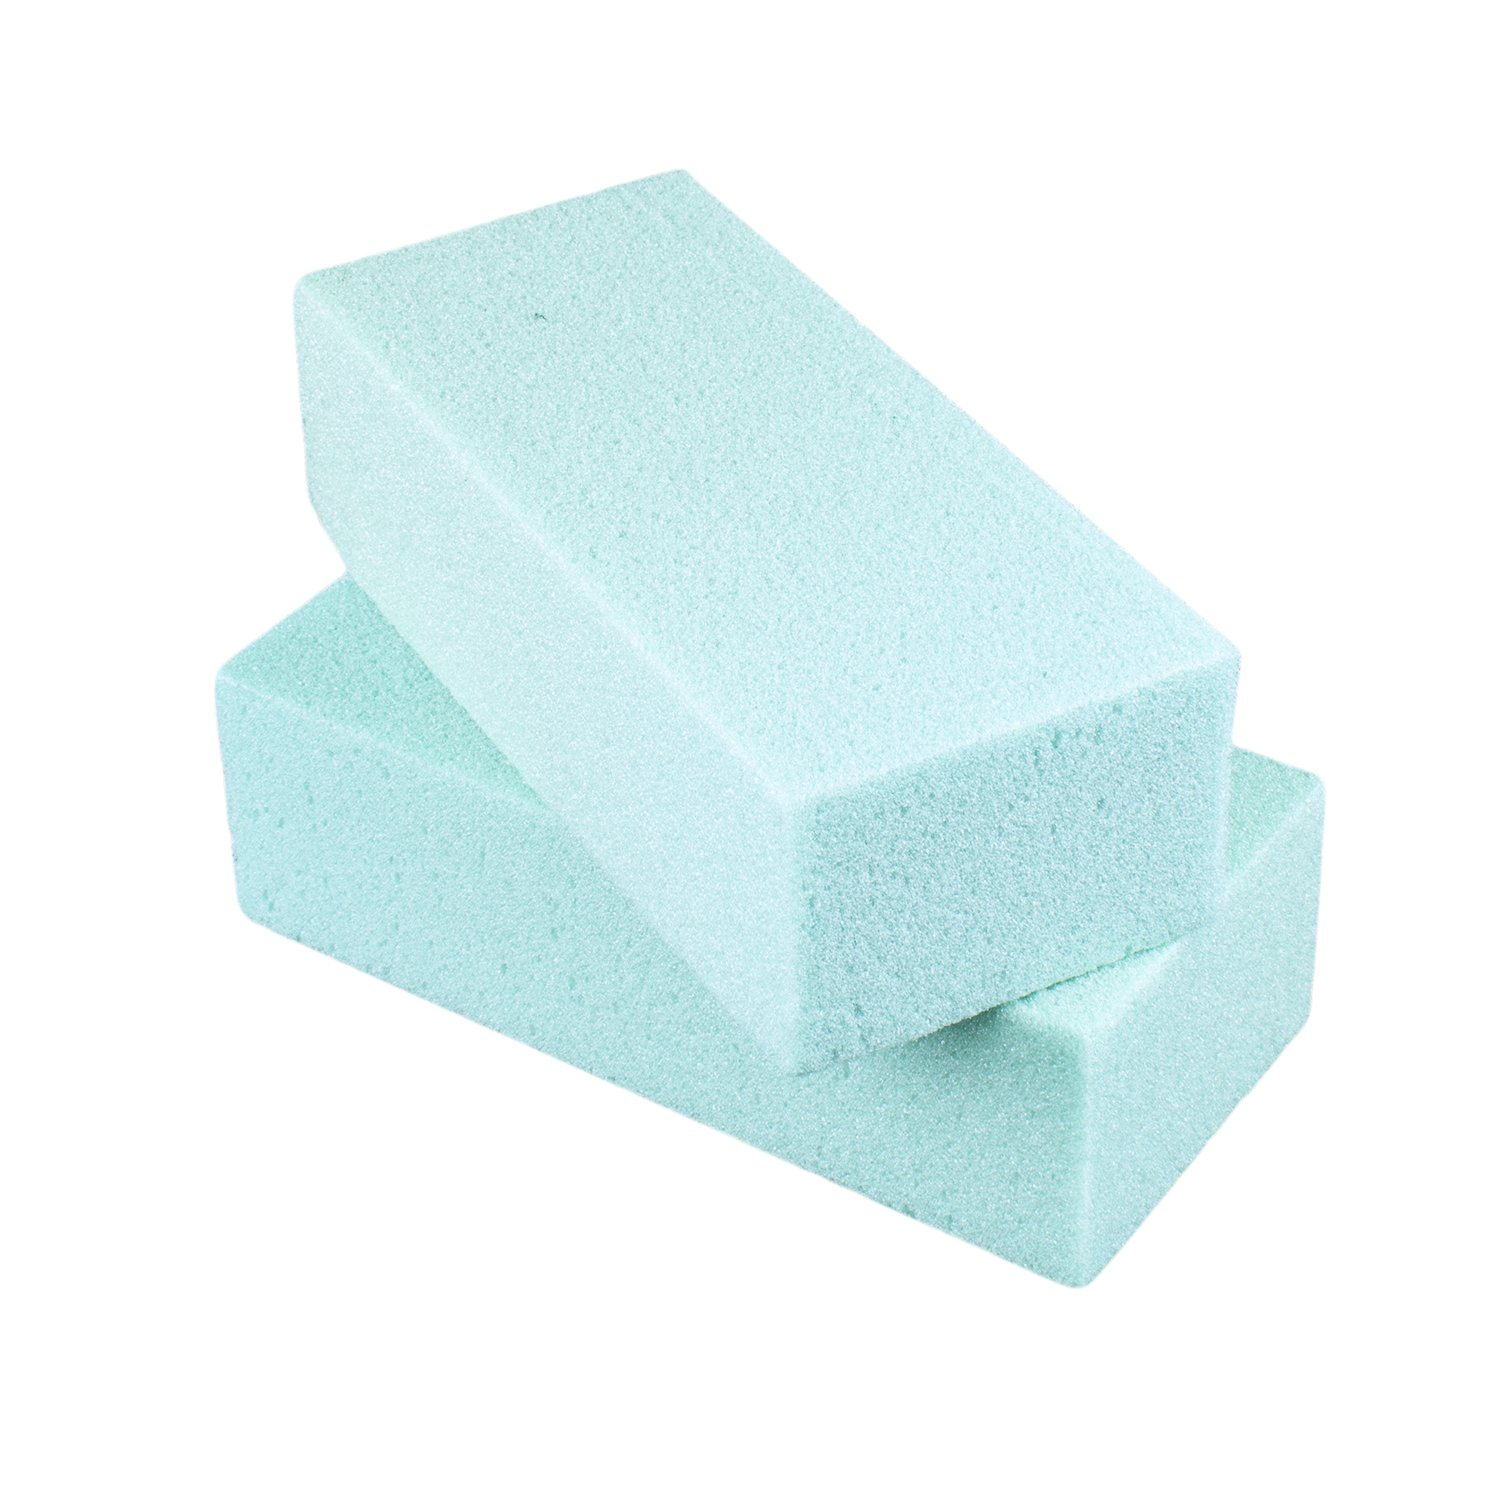 Standard Floral Dry Polystyrene Blocks Bricks Green Arts & Crafts Base Lightweight Heavy Duty for Artificial Floral Dried Arrangements Decorations (2 Pack, 7.75 x 3.5) by Super Z Outlet